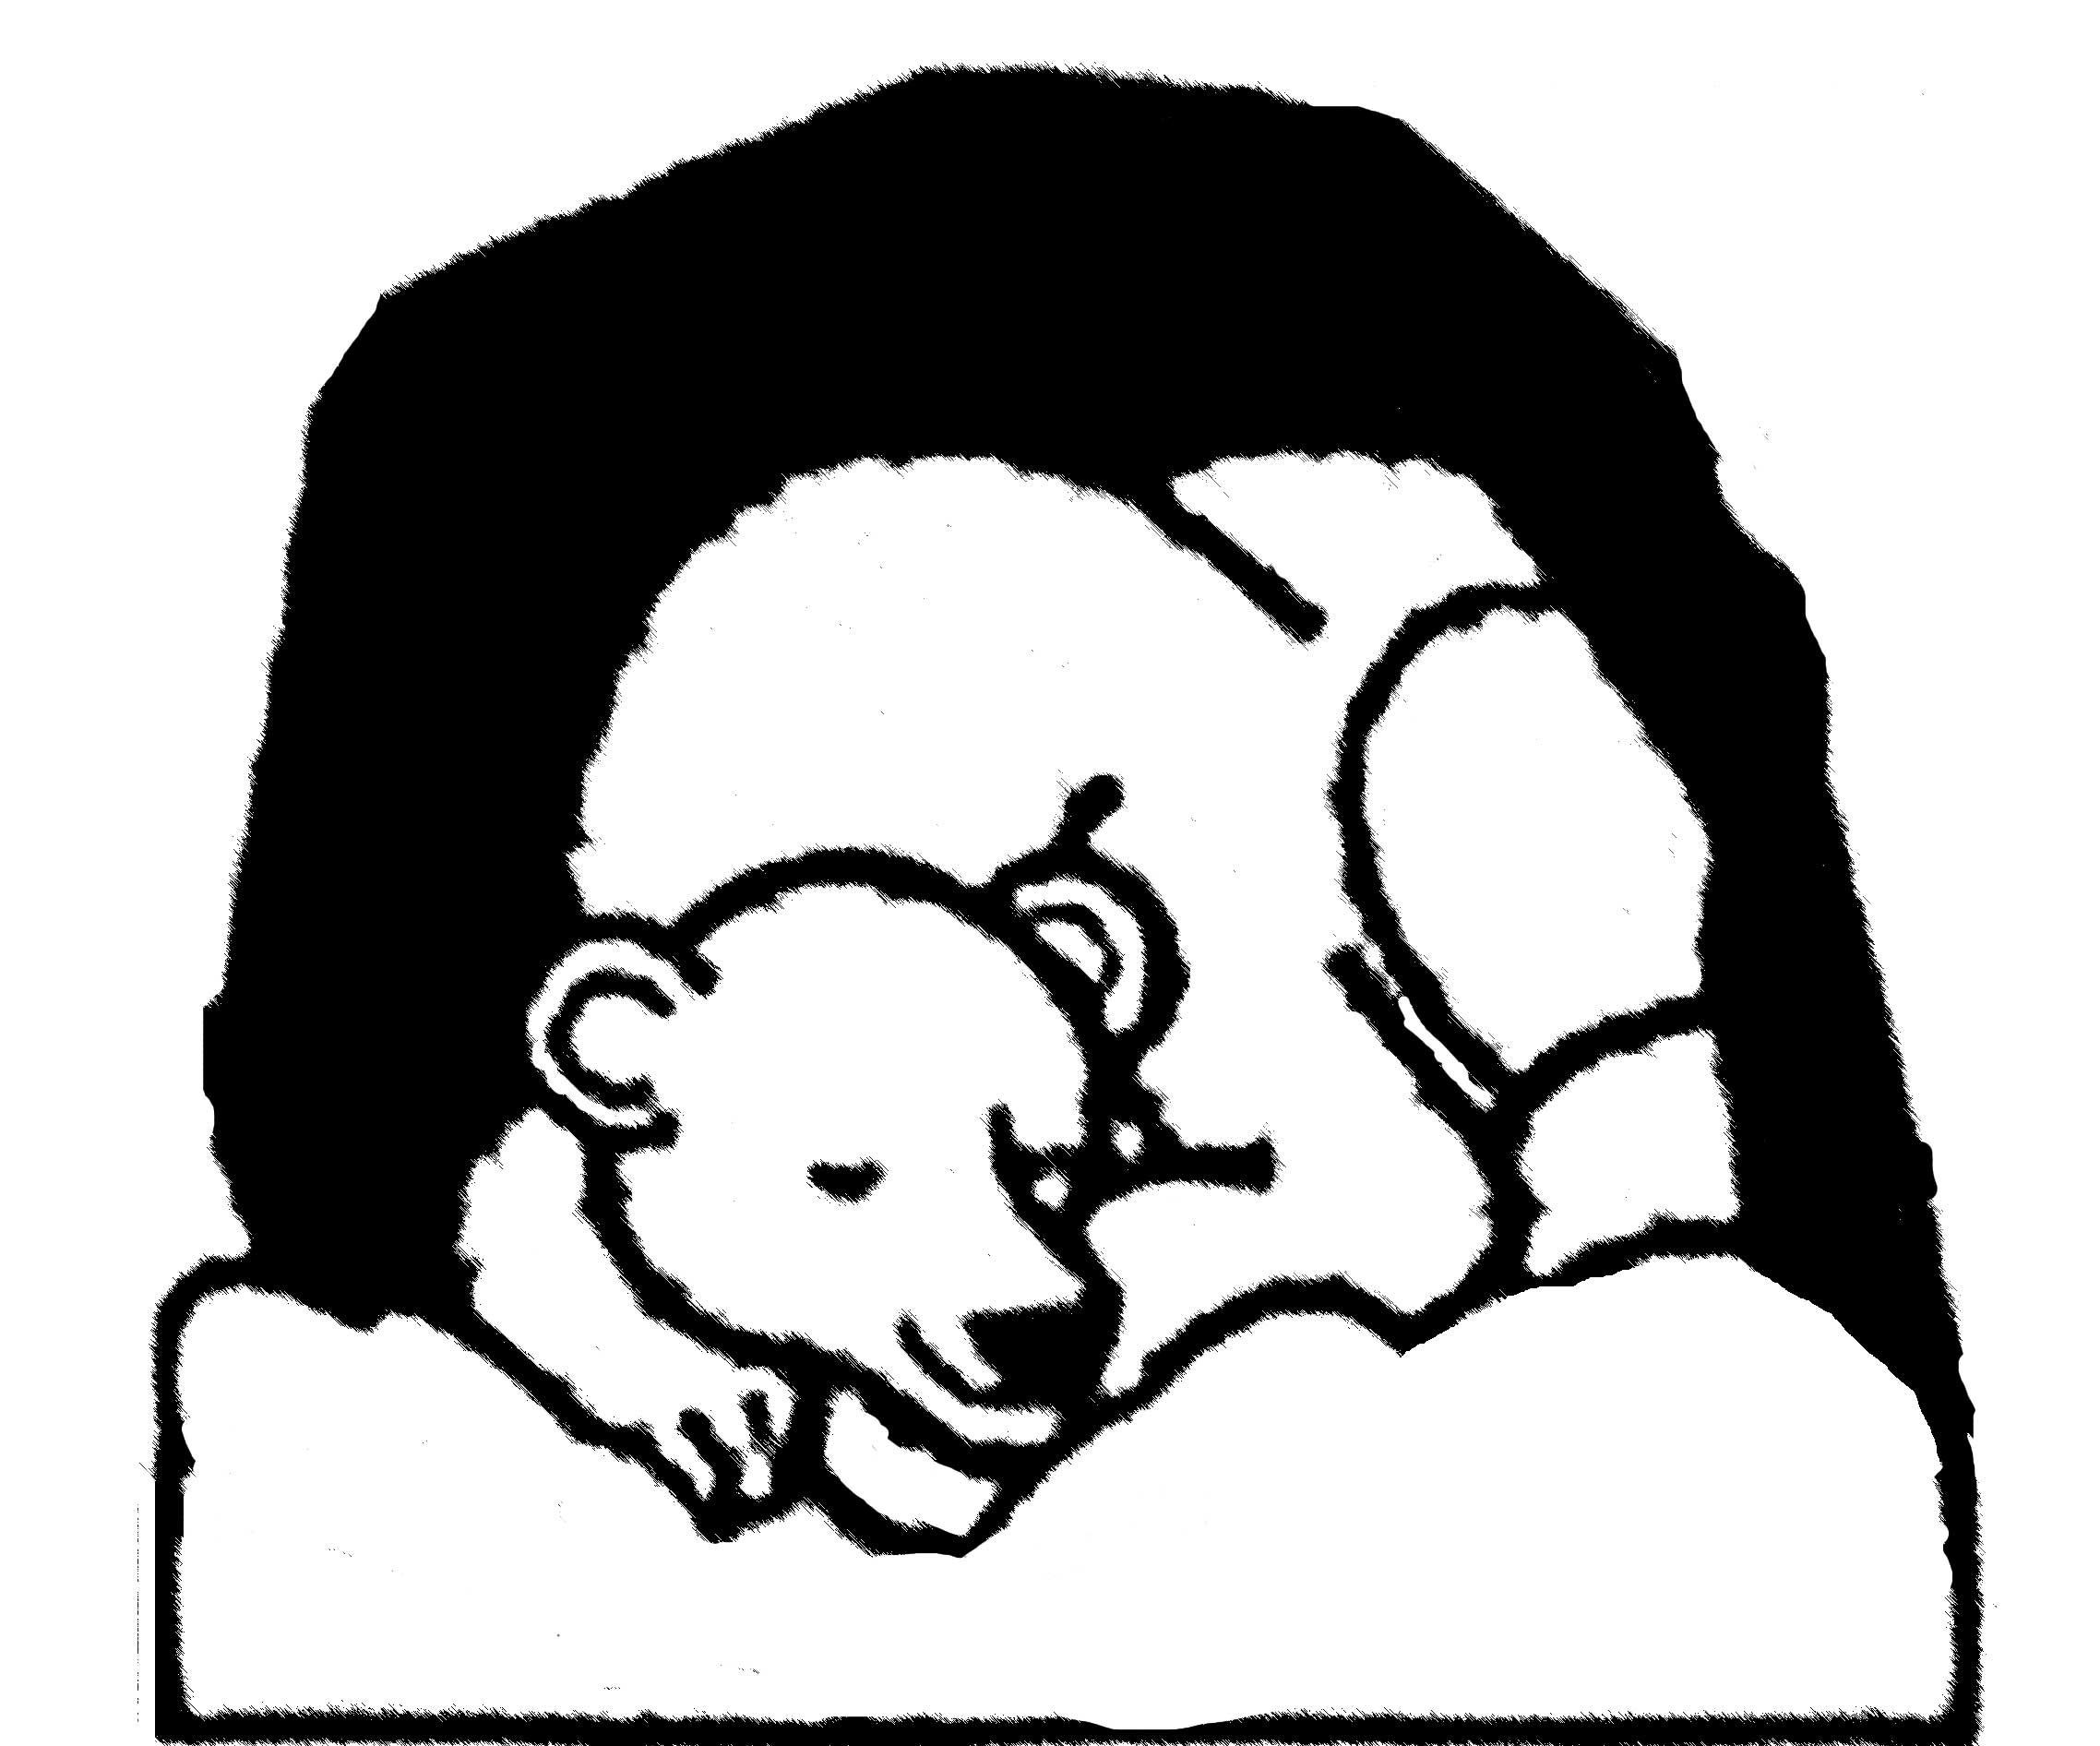 Hibernating bears pages samzuniss. Cave clipart coloring page graphic download